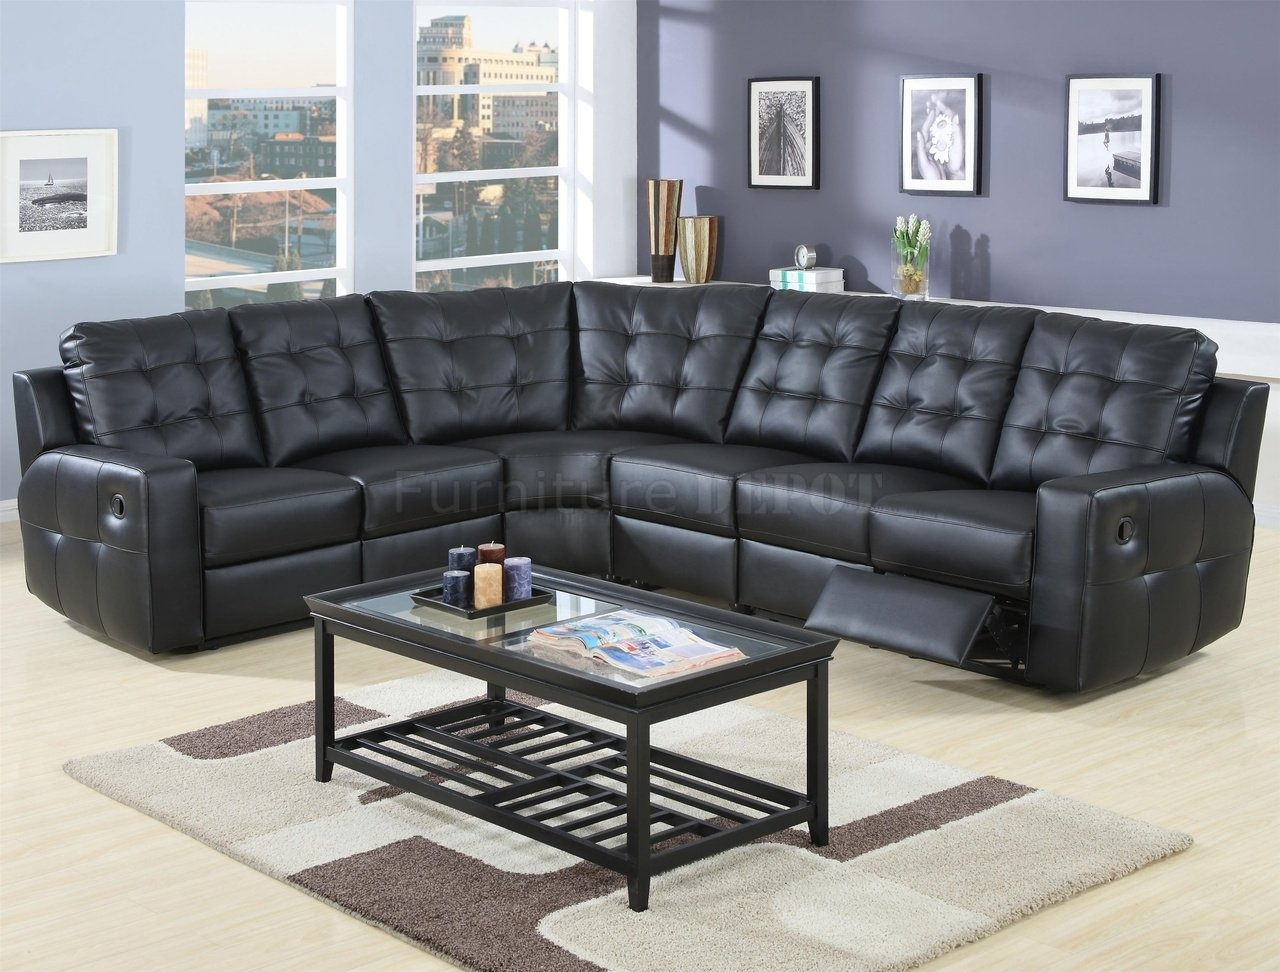 Black Sectional Sofa With Recliners – Nrhcares In Leather Recliner Sectional Sofas (View 6 of 10)